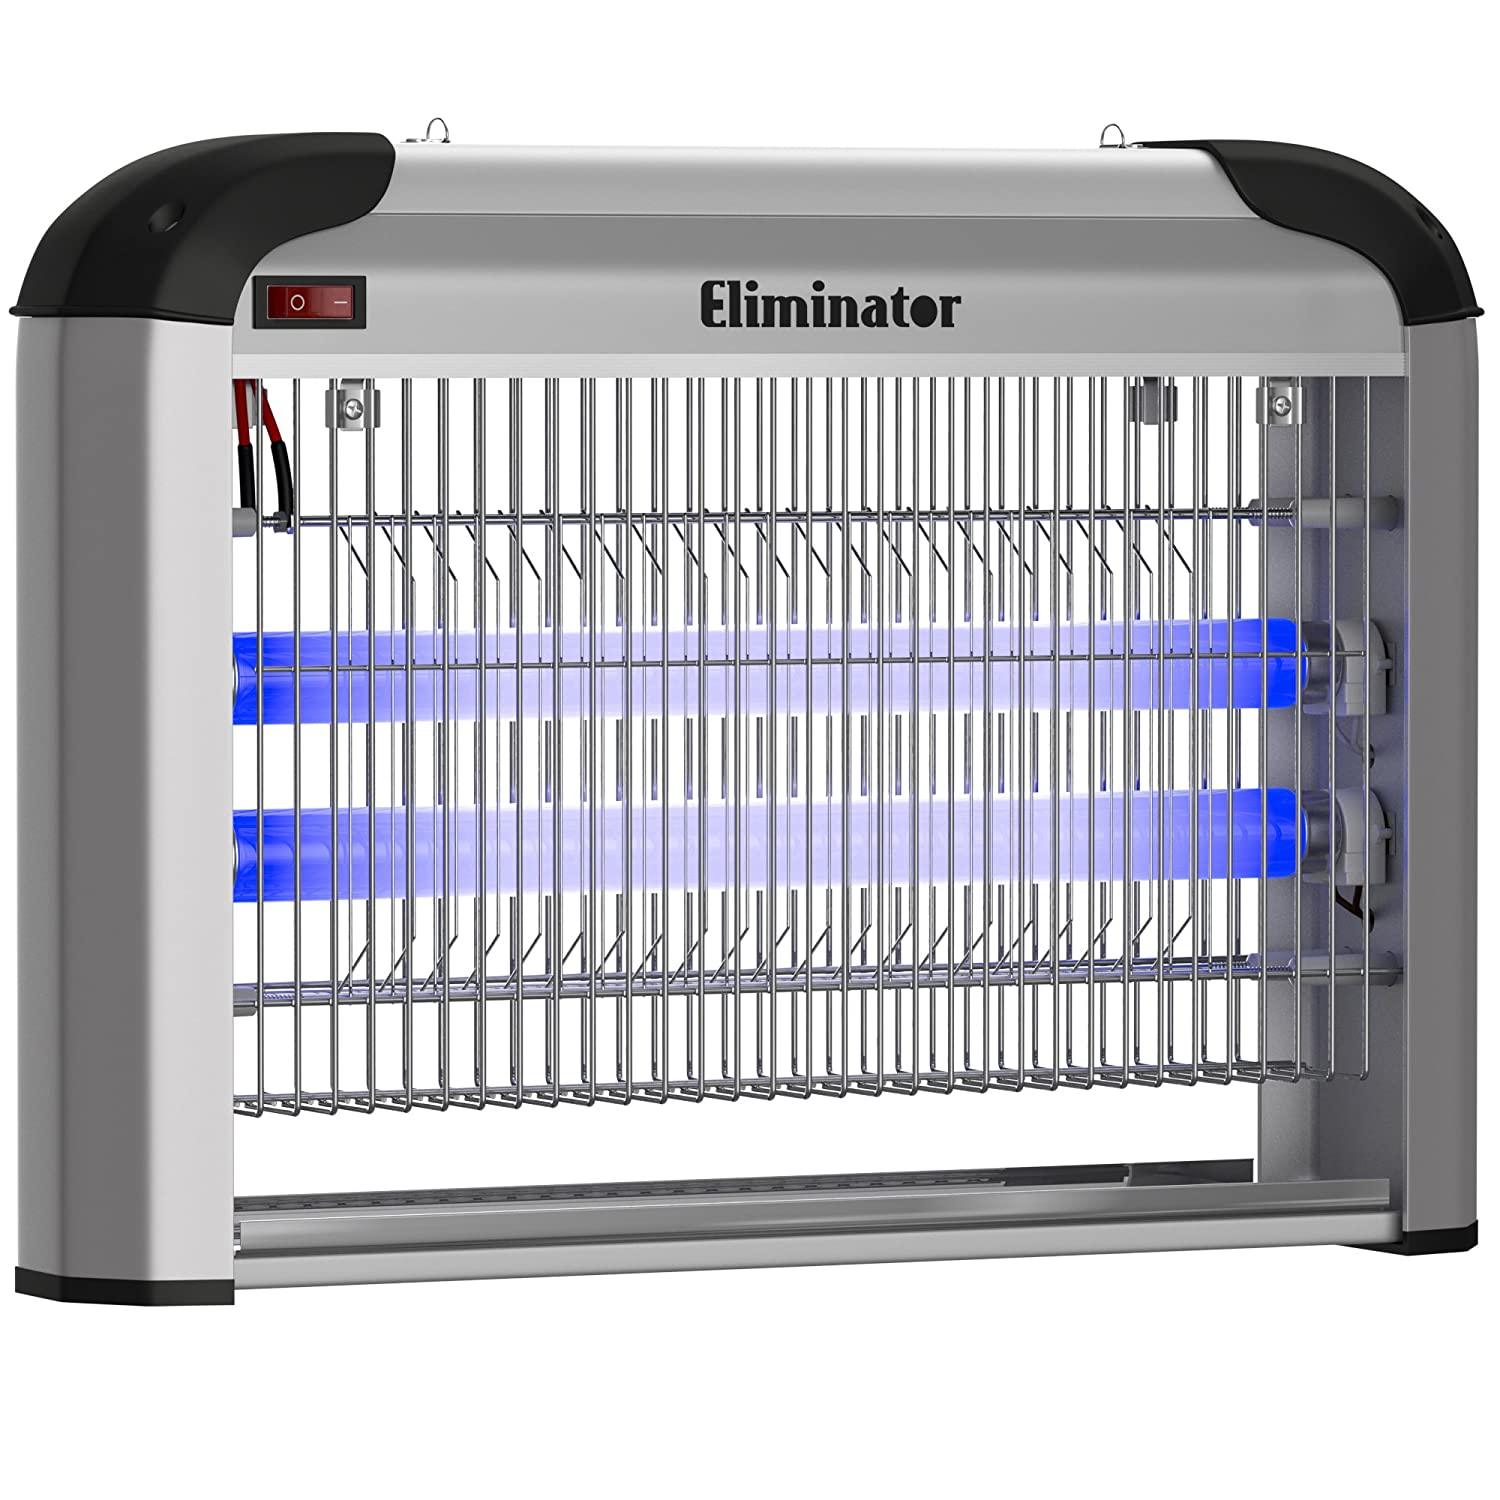 Eliminator Electric Fly Zapper Trap and Bug Zapper Killer Catcher – Protects 5000 Sq. Ft. / Exterminates All Insects Bug Pests - Electronic Pest Control For Residential and Commercial Use [UPGRADED]